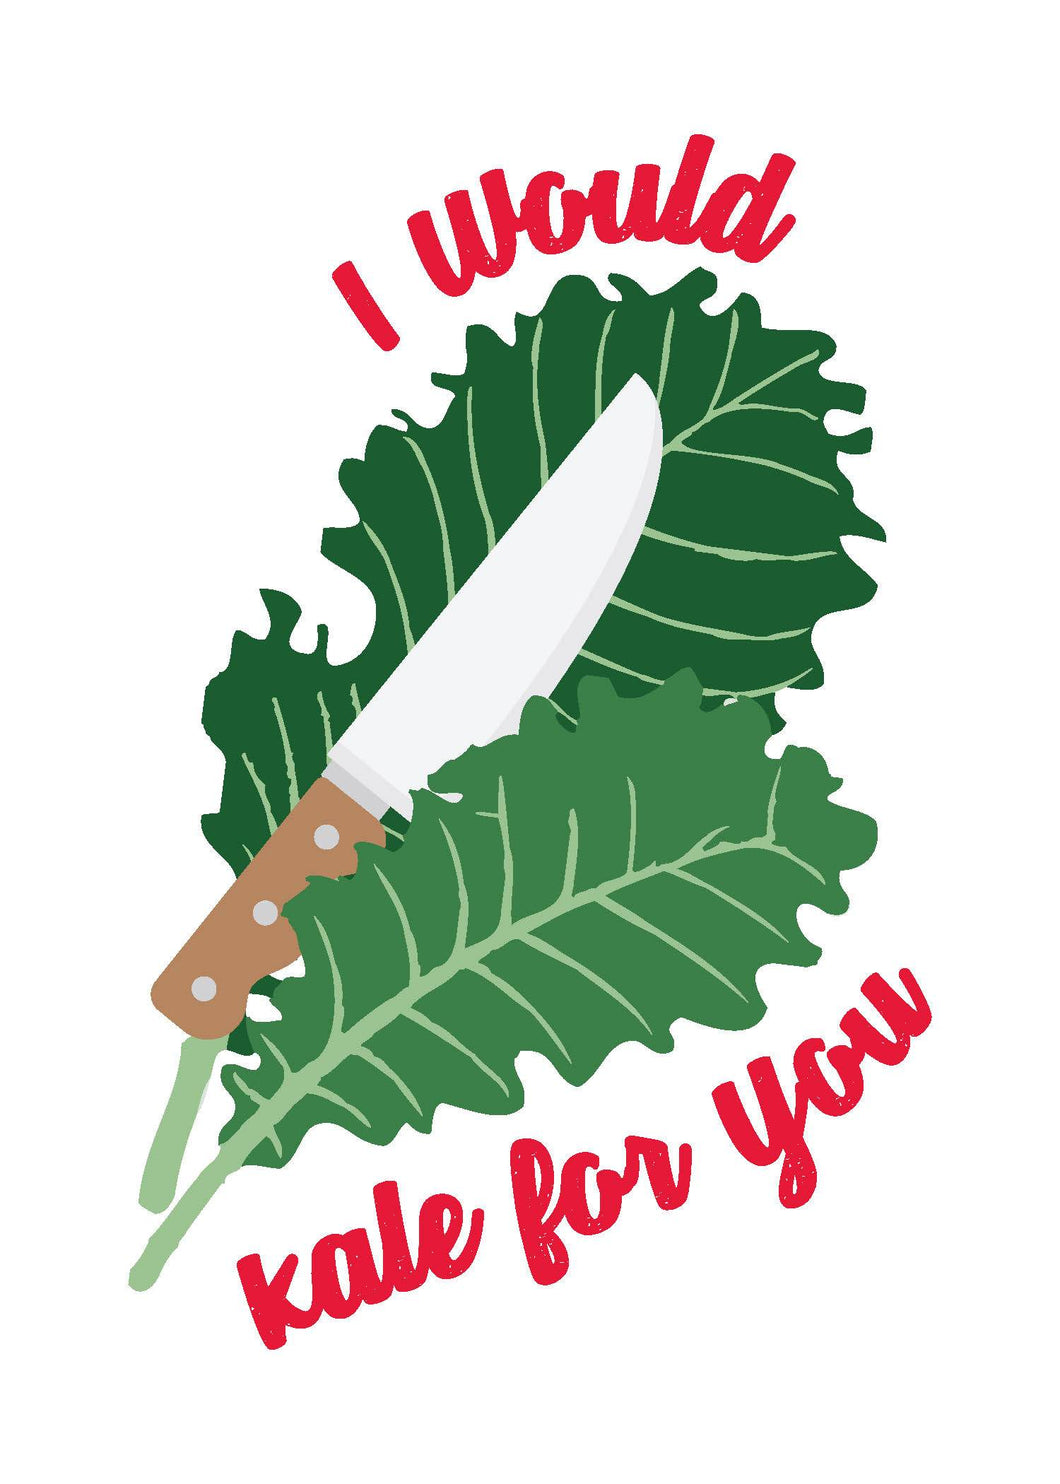 Valentine's Day Card - Kale For You